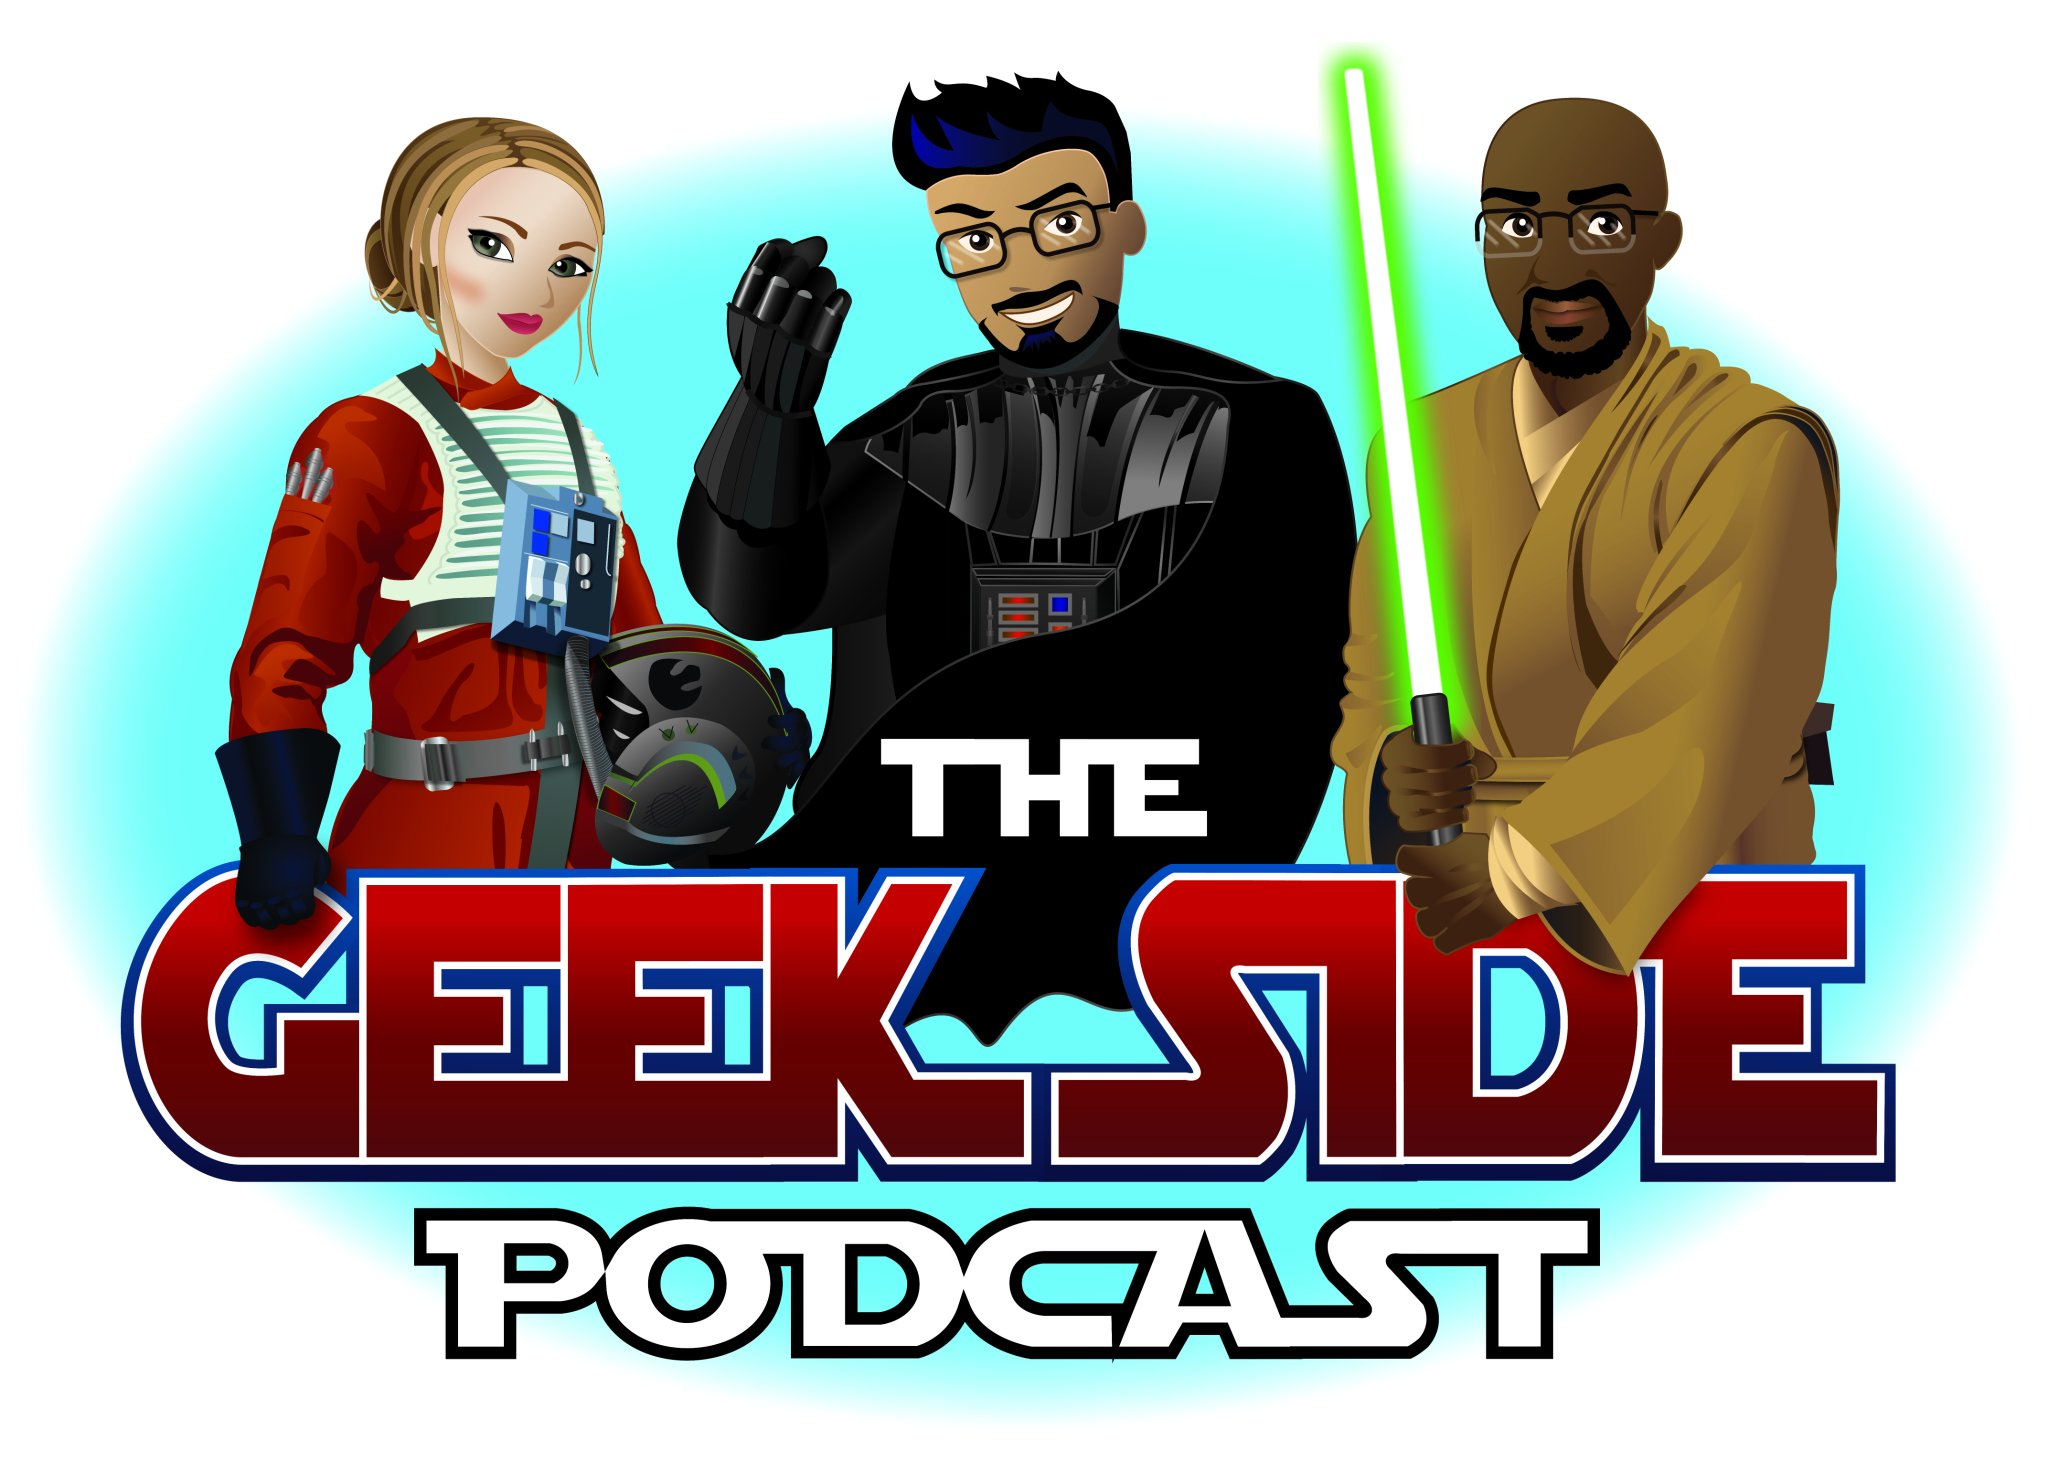 The Geek Side Podcast #6: ClosetCos and The Logo Reveal